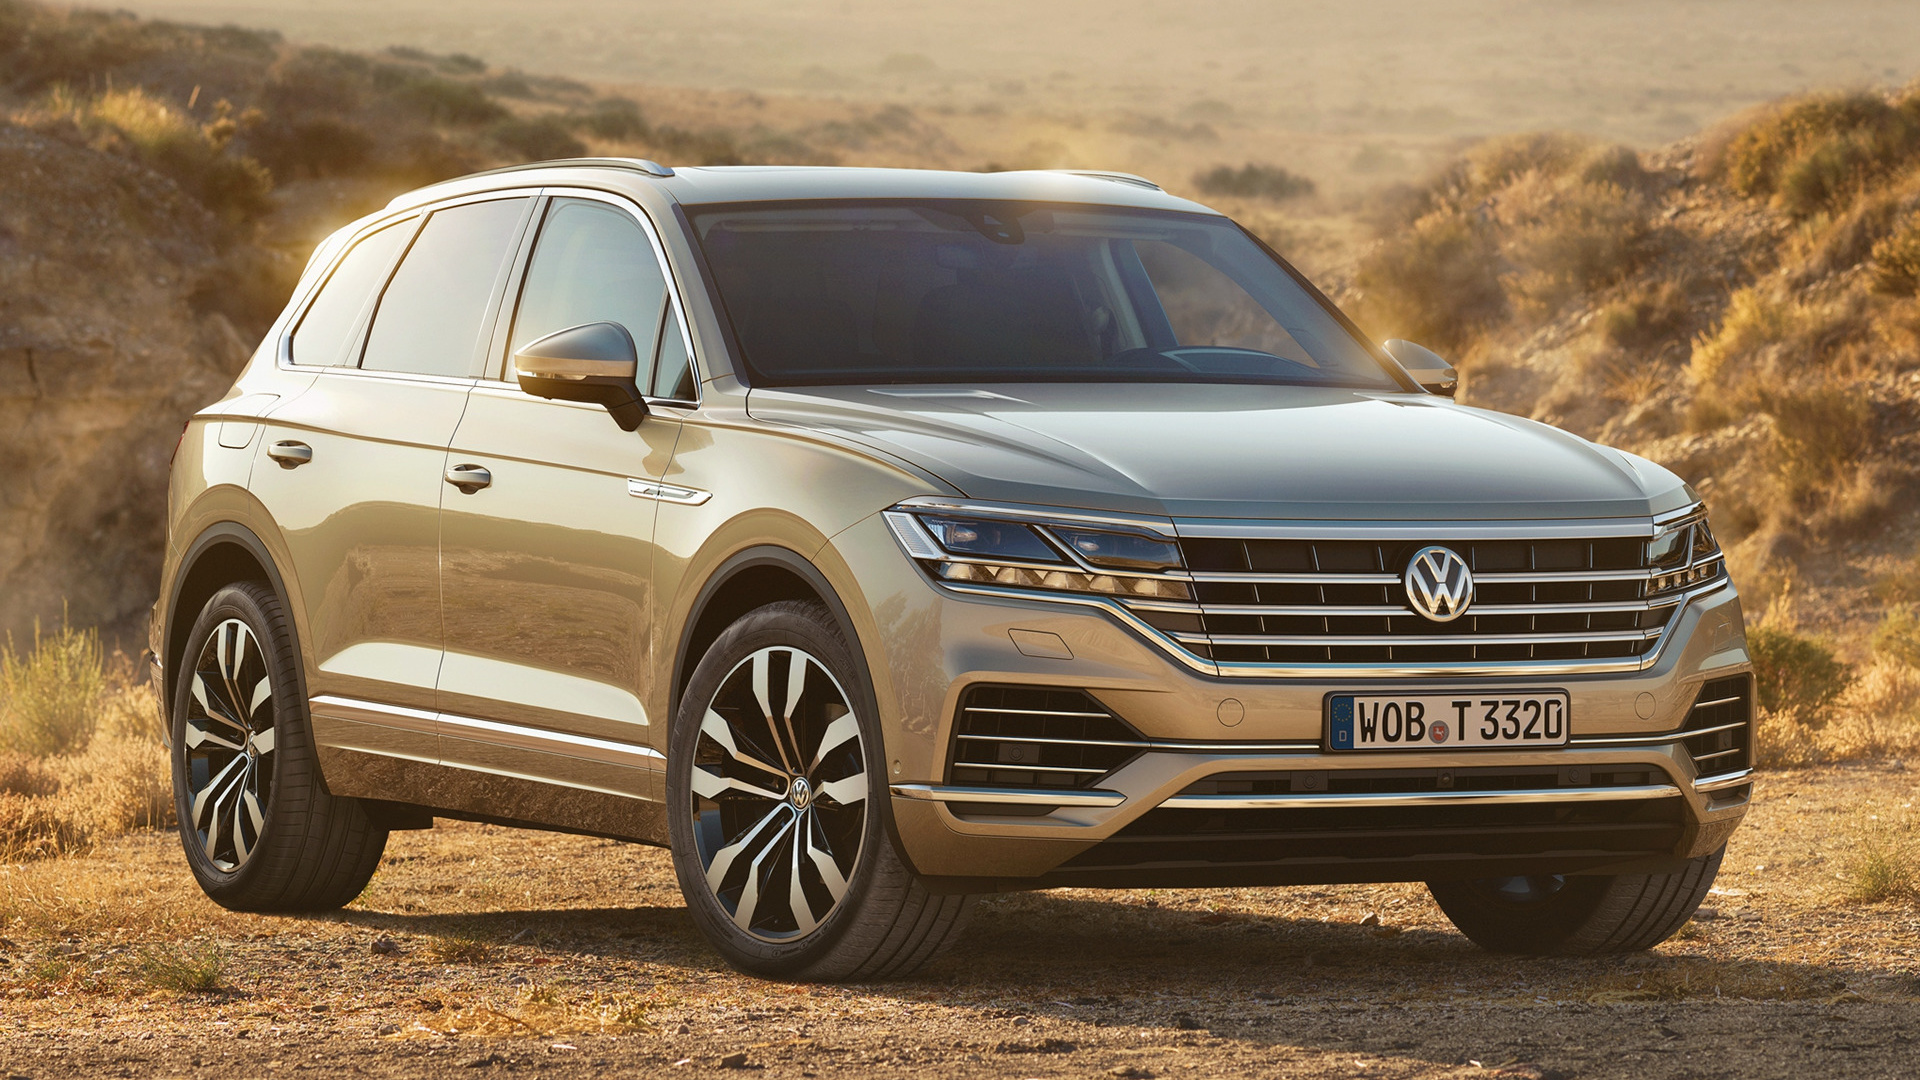 2018 Volkswagen Touareg   Wallpapers and HD Images Car Pixel 1920x1080